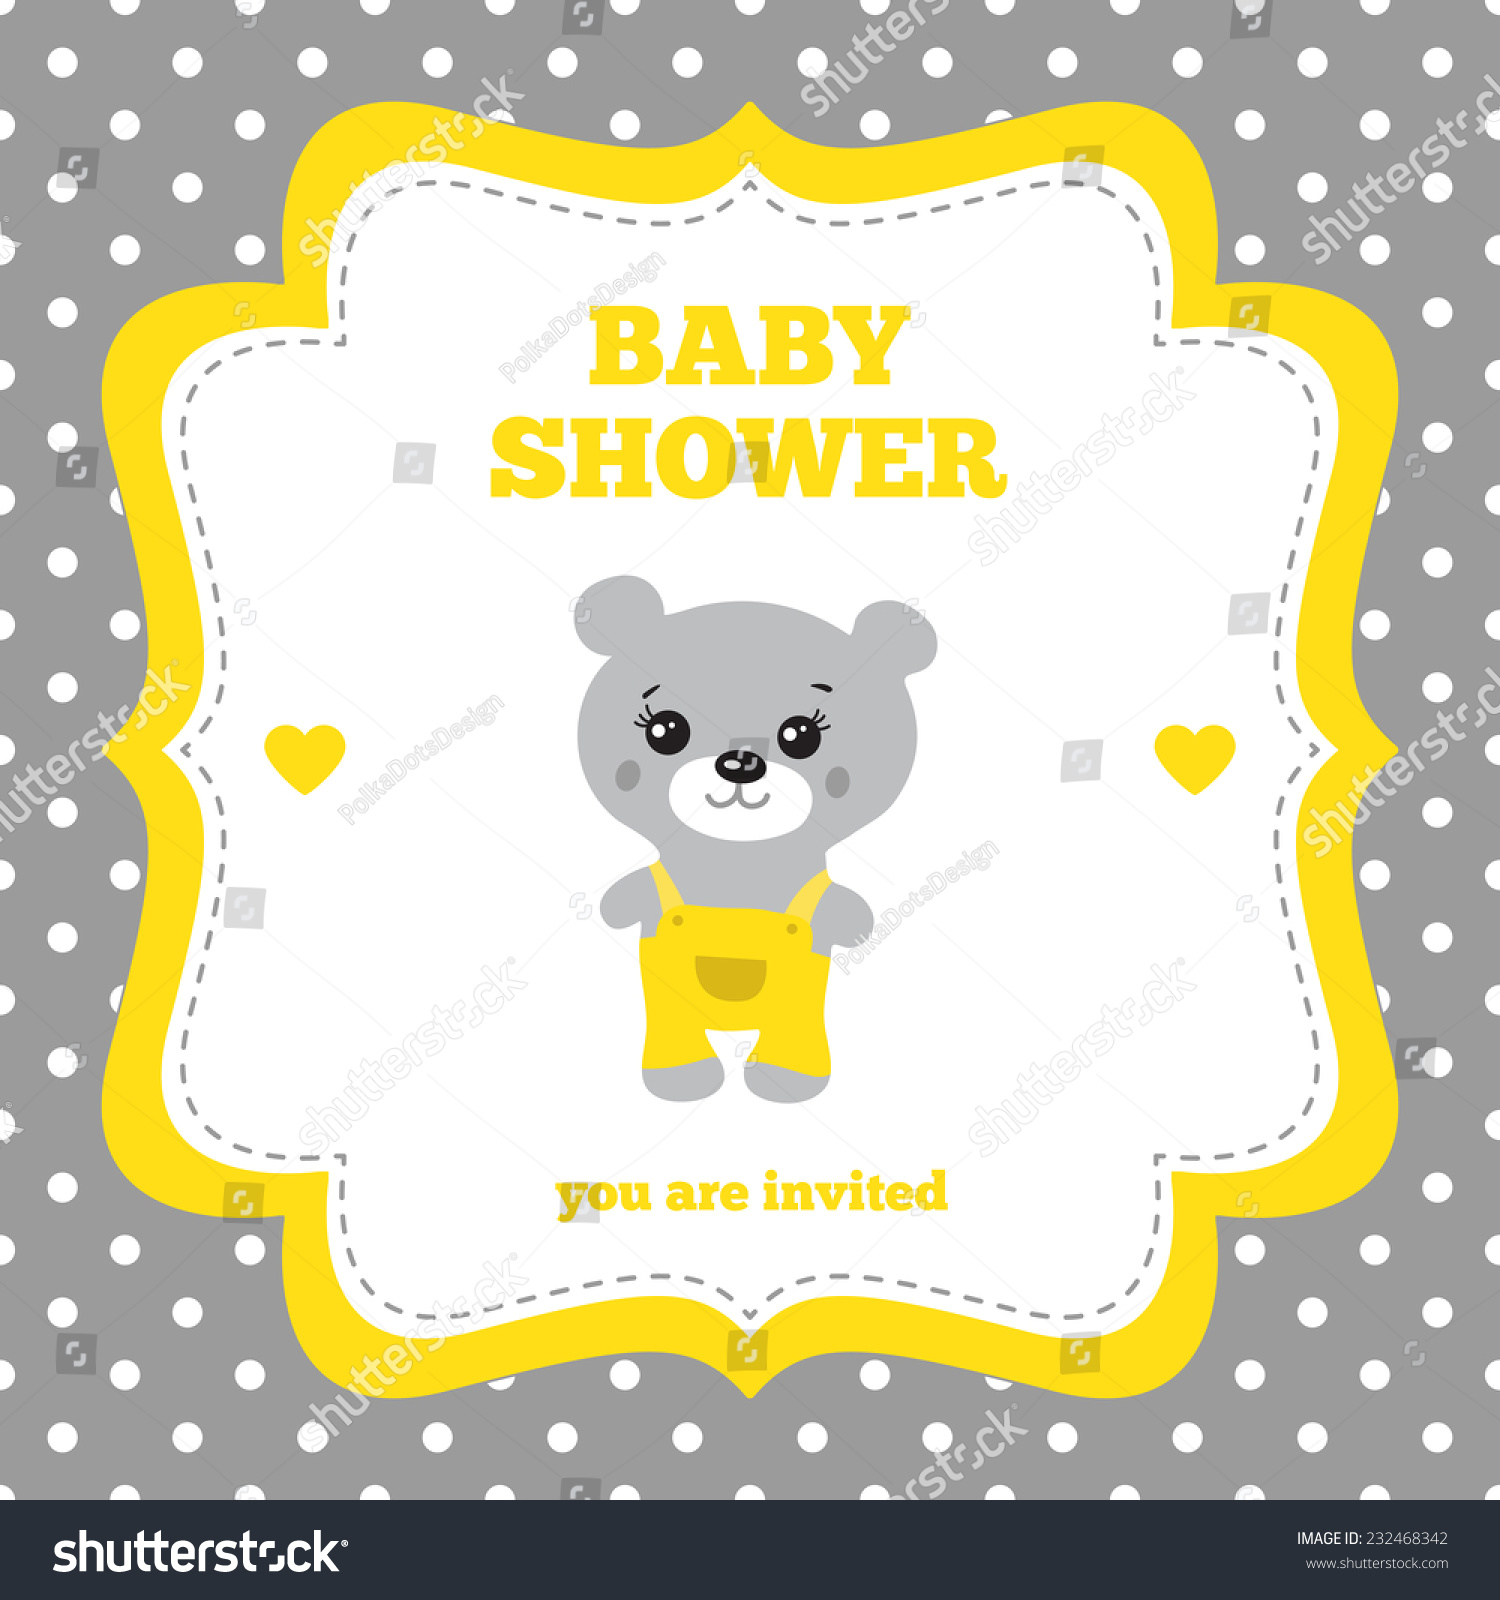 Baby Shower Invitation, Template. Gray, Yellow And White Colors.  Illustration Of Little